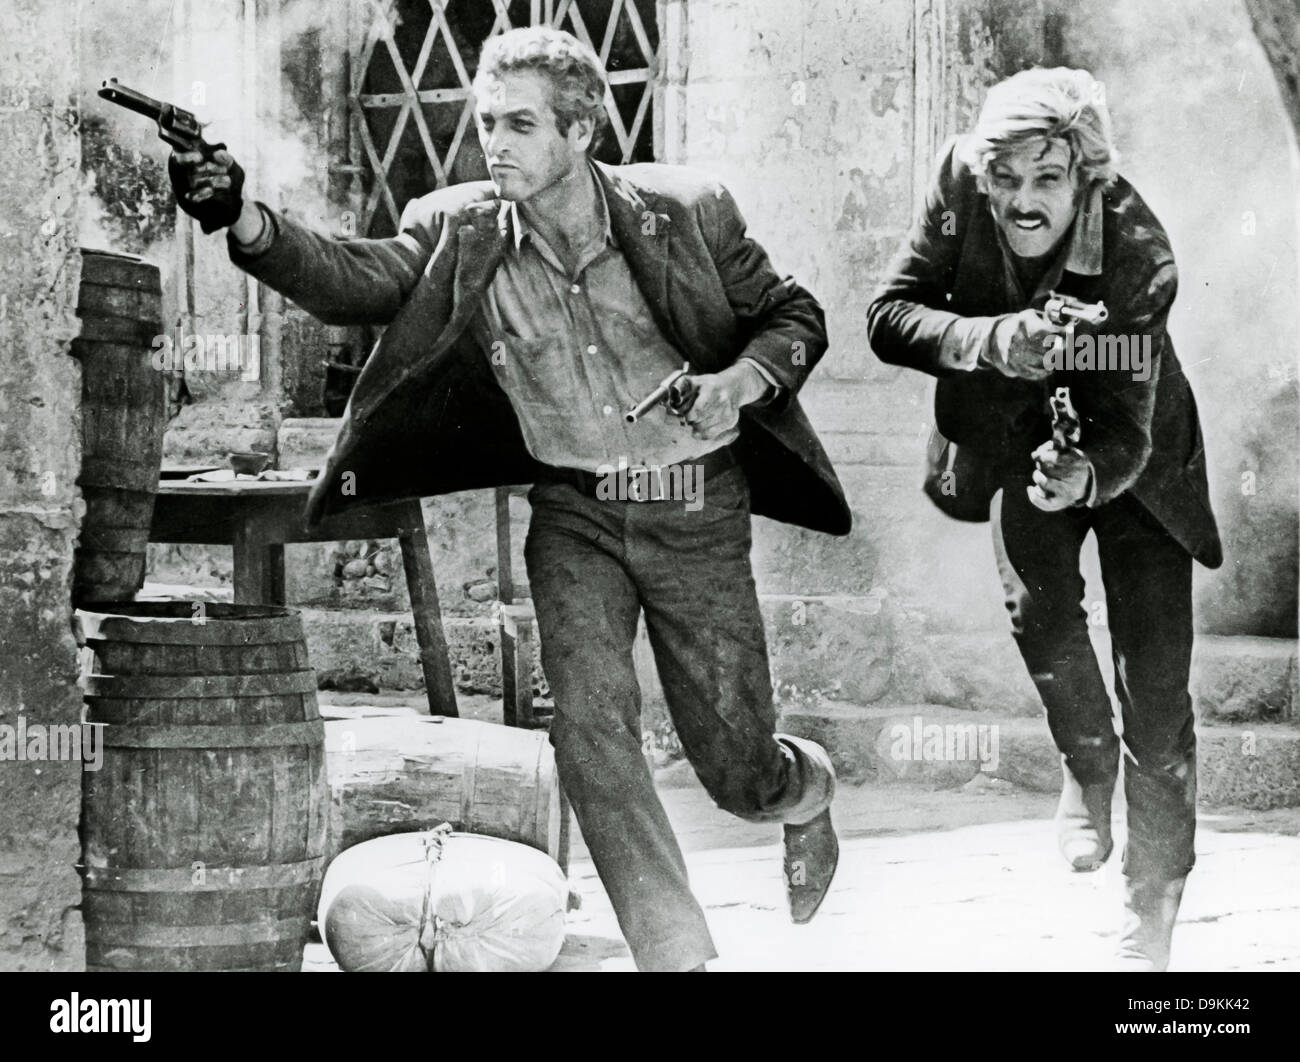 Robert Redford,Paul Newman,Butch Cassidy 1969 - Stock Image